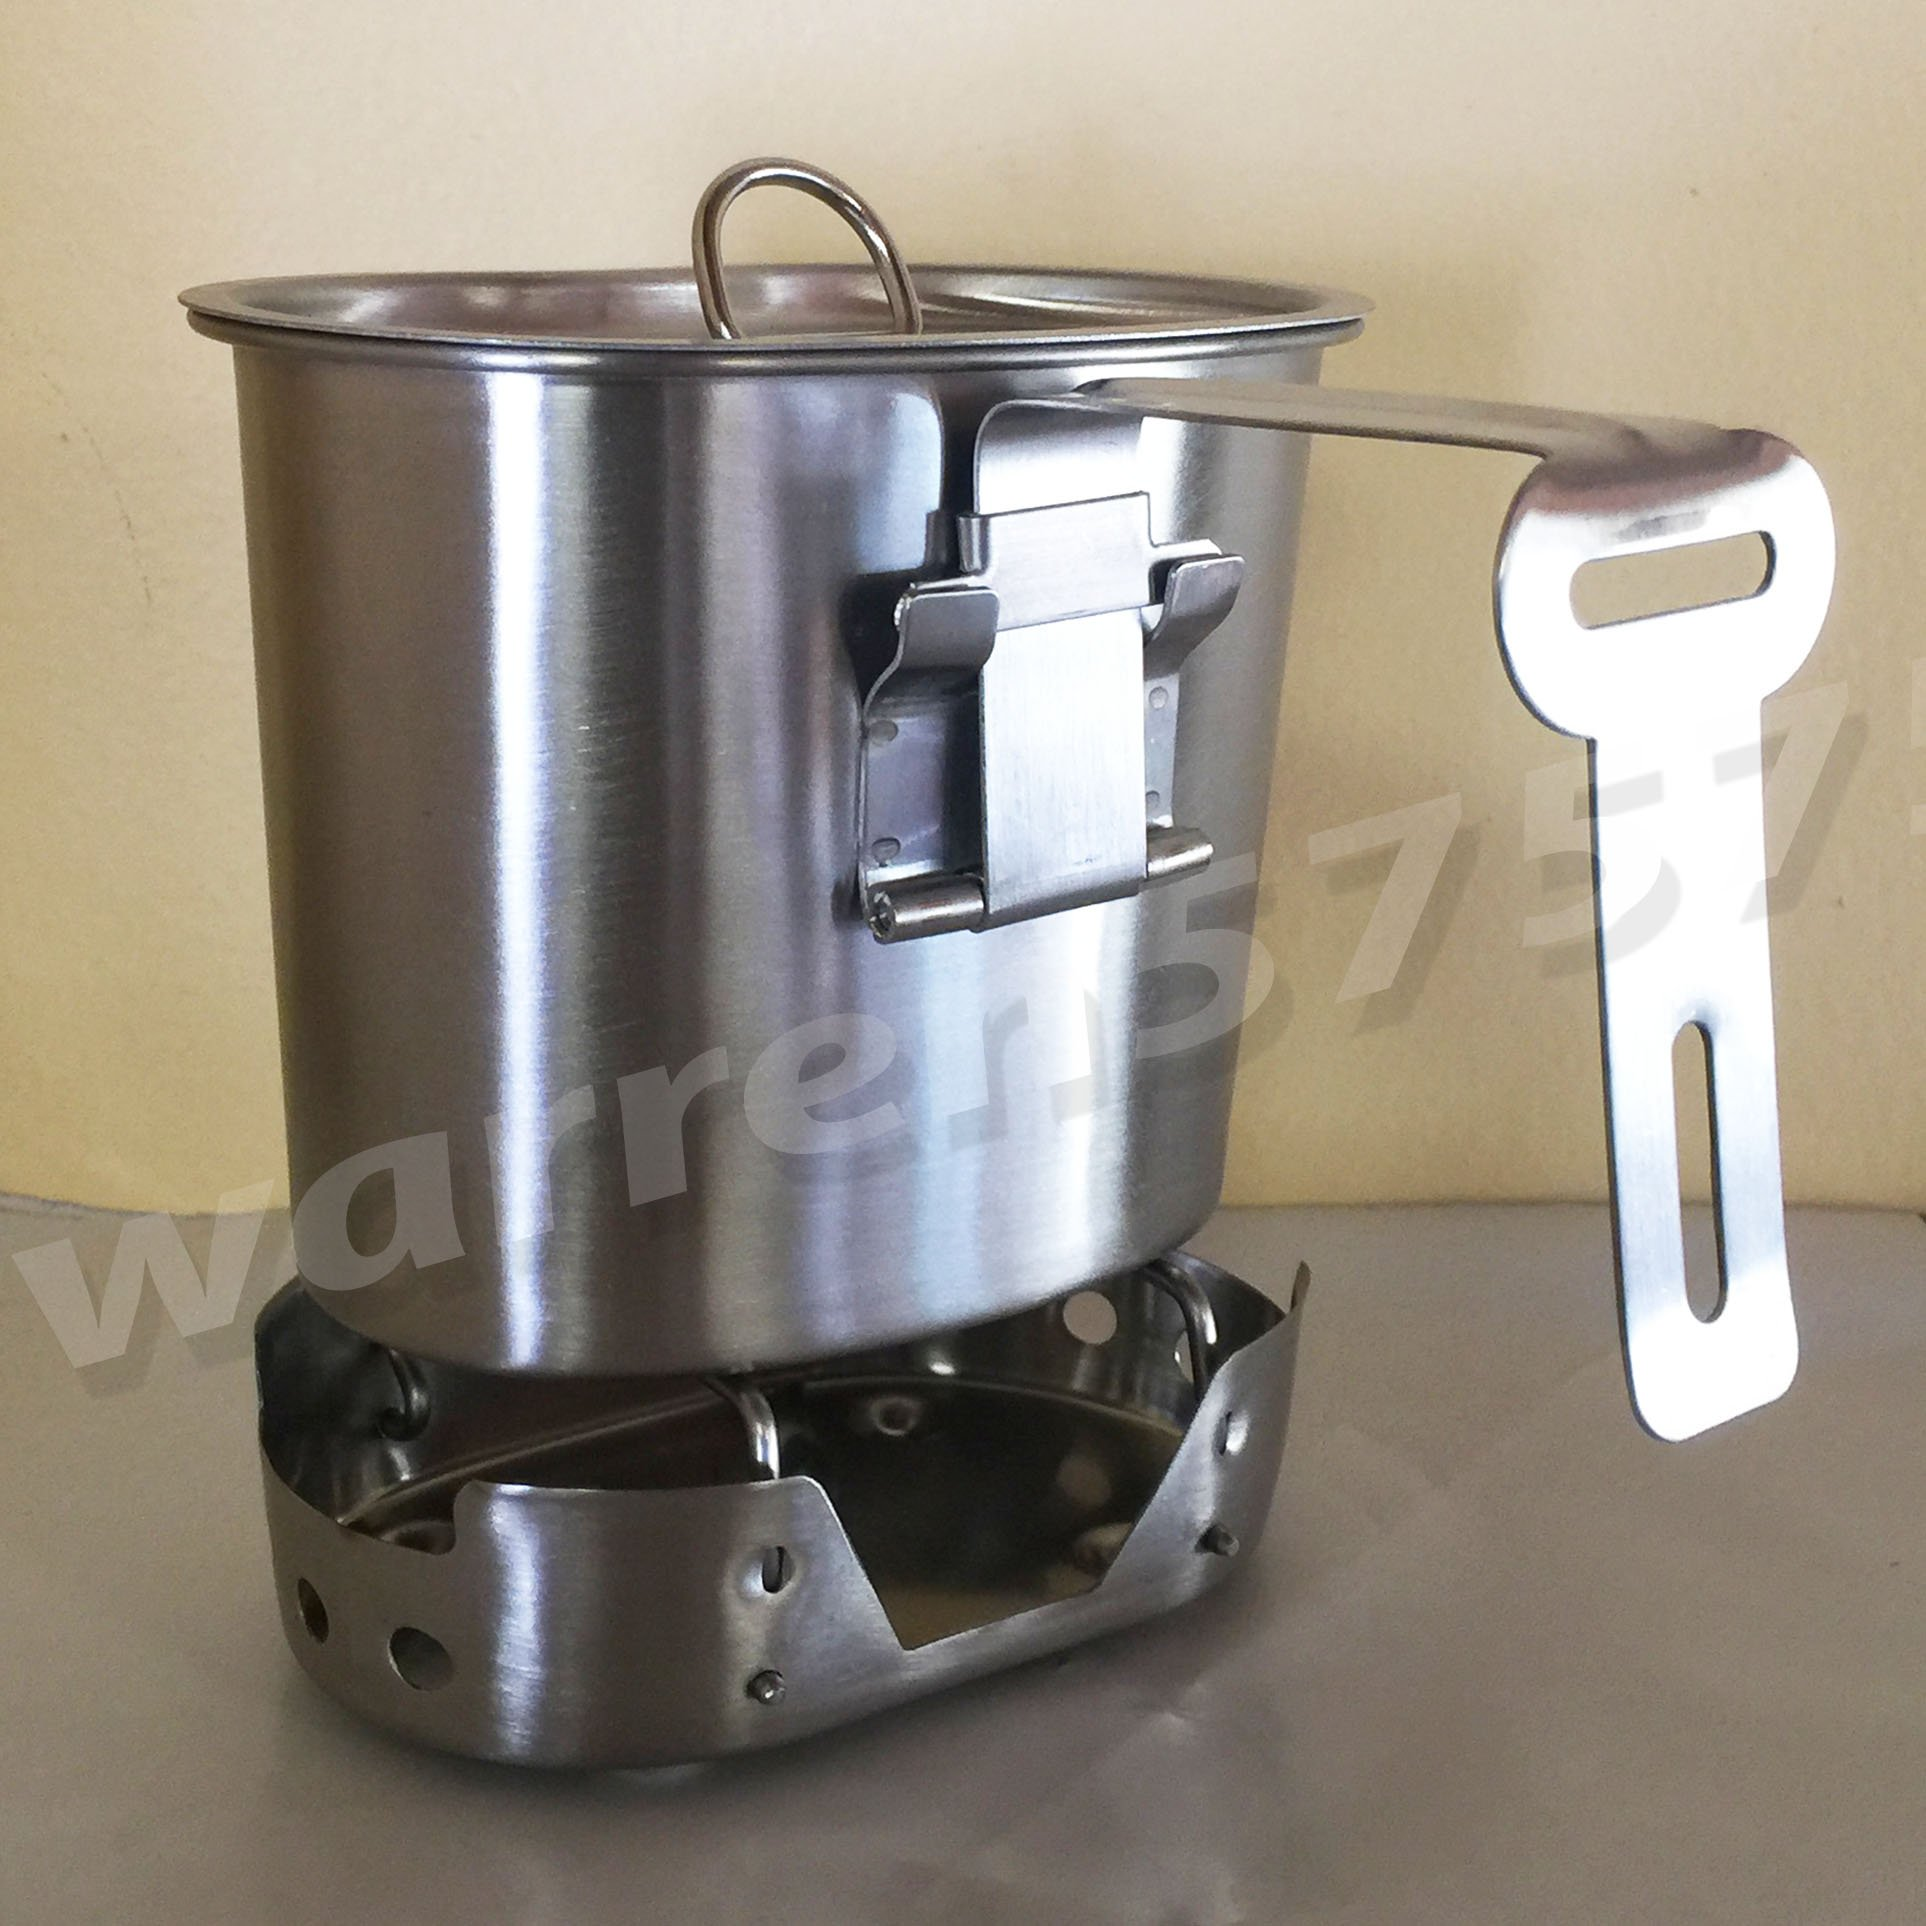 WWII STYLE Stainless Steel Canteen Cup with Foldable Handle and Vented LID Brand New Matte Finish. for 1qt. Style Canteens. With STAINLESS STEEL  CANTEEN CUP STOVE FOLDABLE.